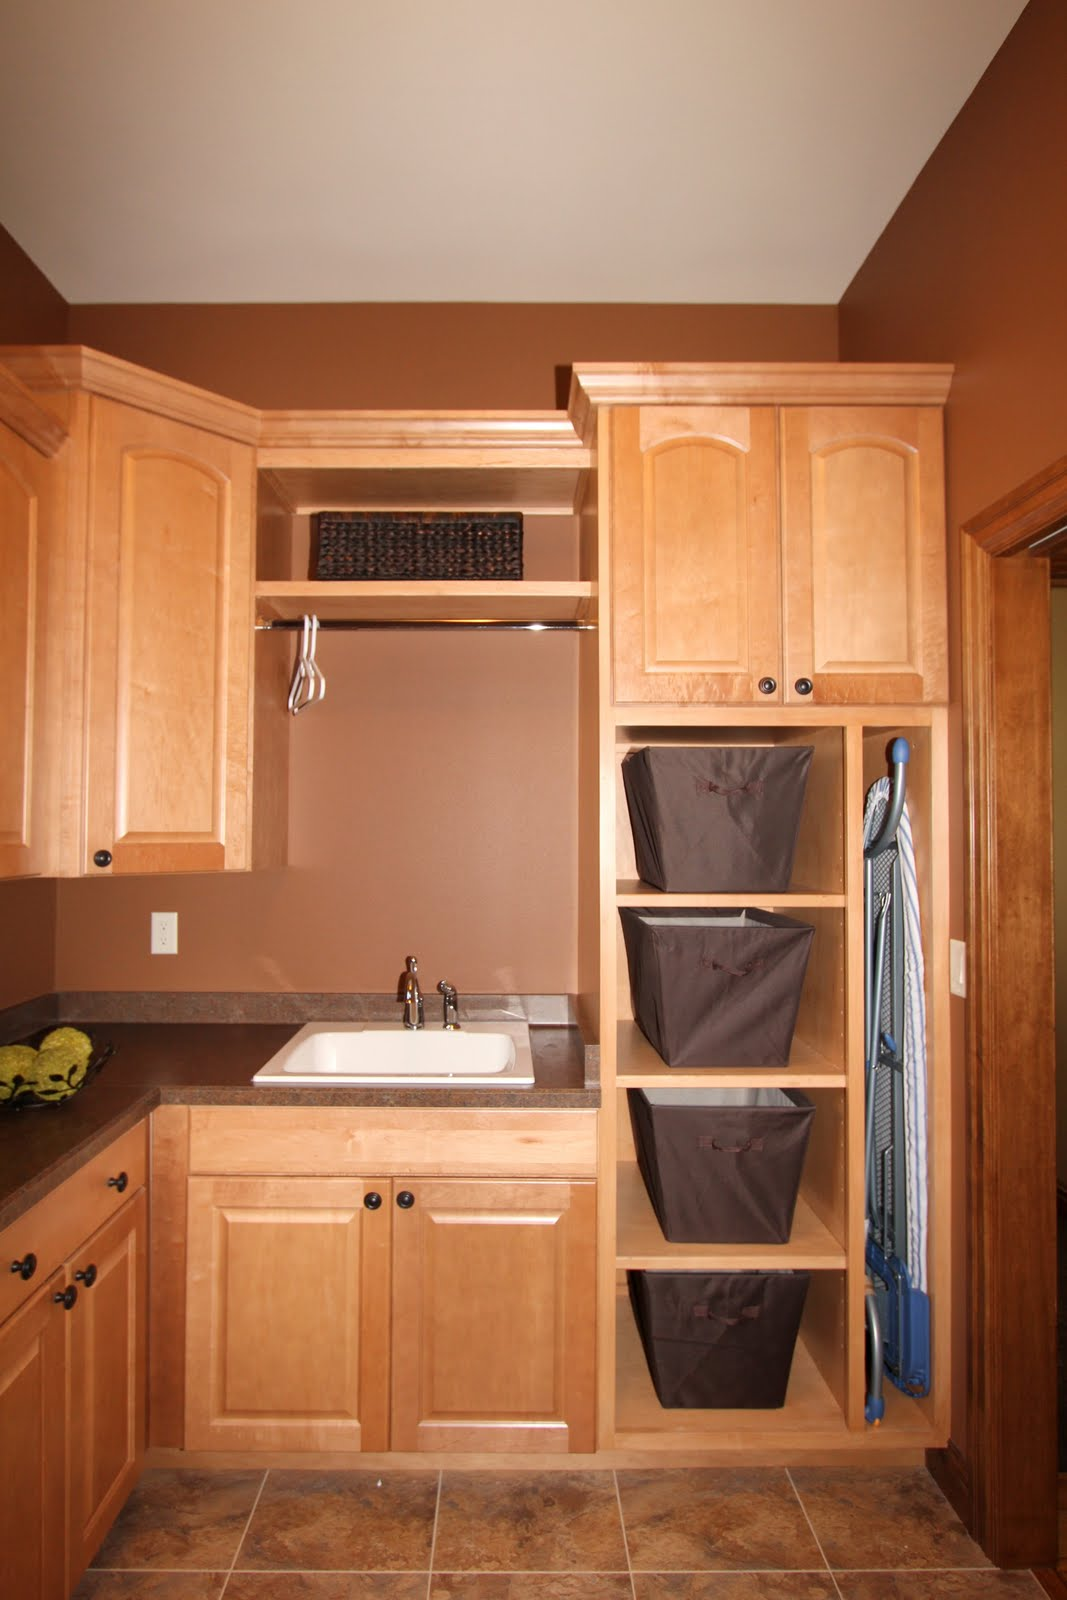 Design For Cabinet For Room: Angie Schwab Interiors: Laundry Room